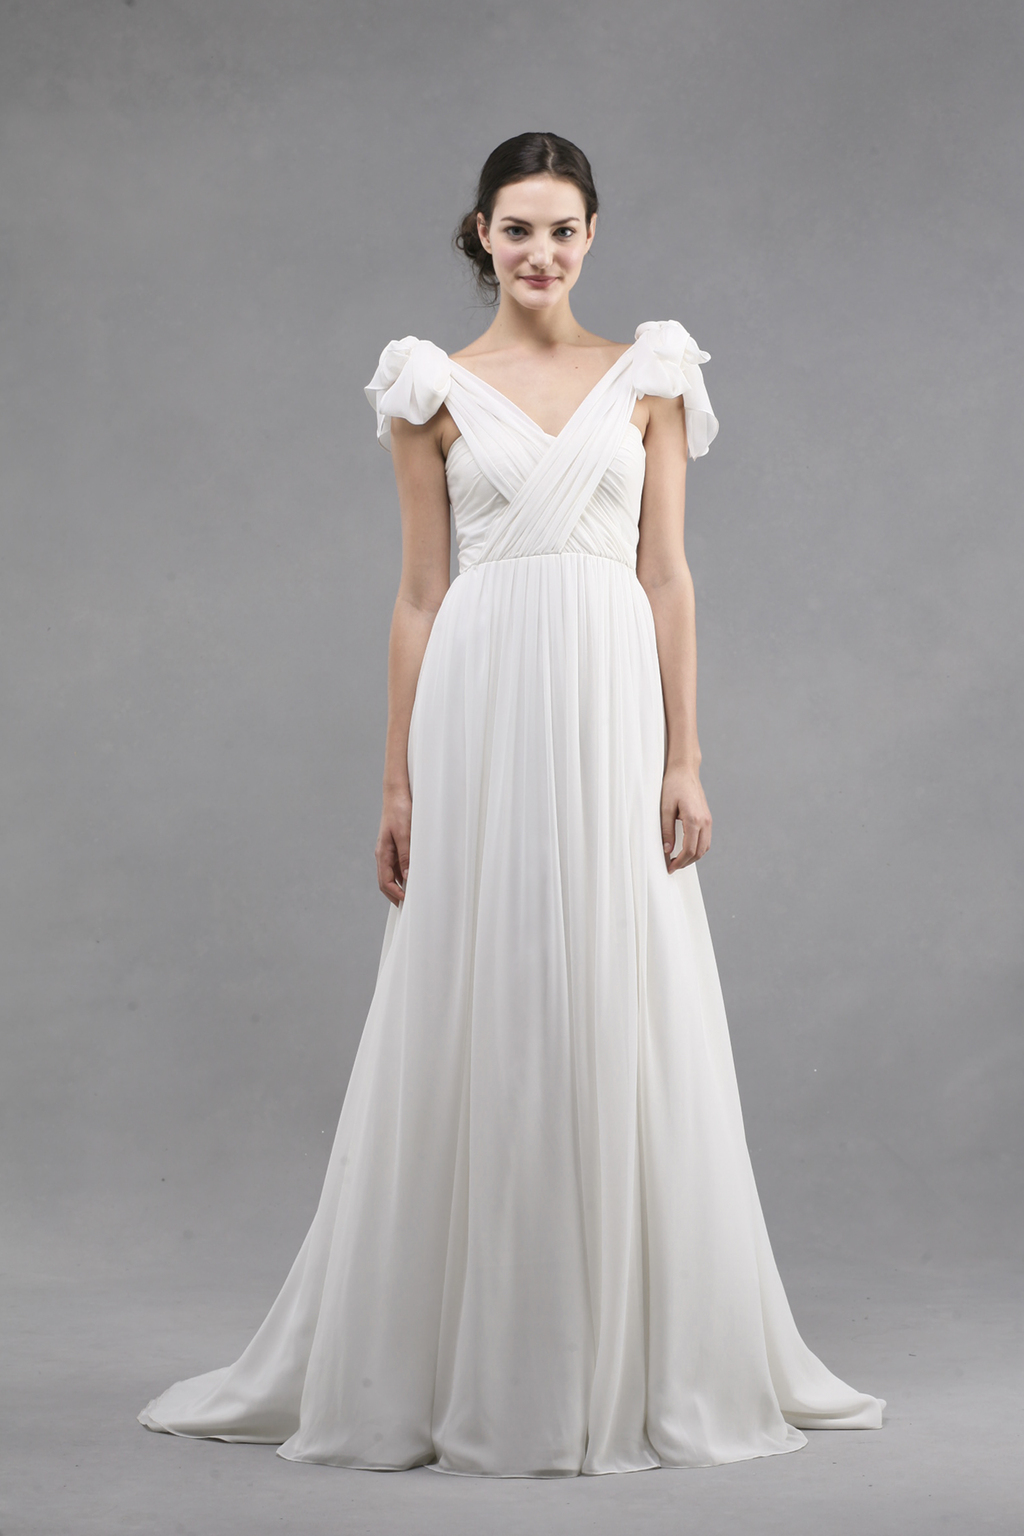 jenny yoo wedding dress colllection spring summer 2013 bridal gowns monarch criss cross v neck tIed